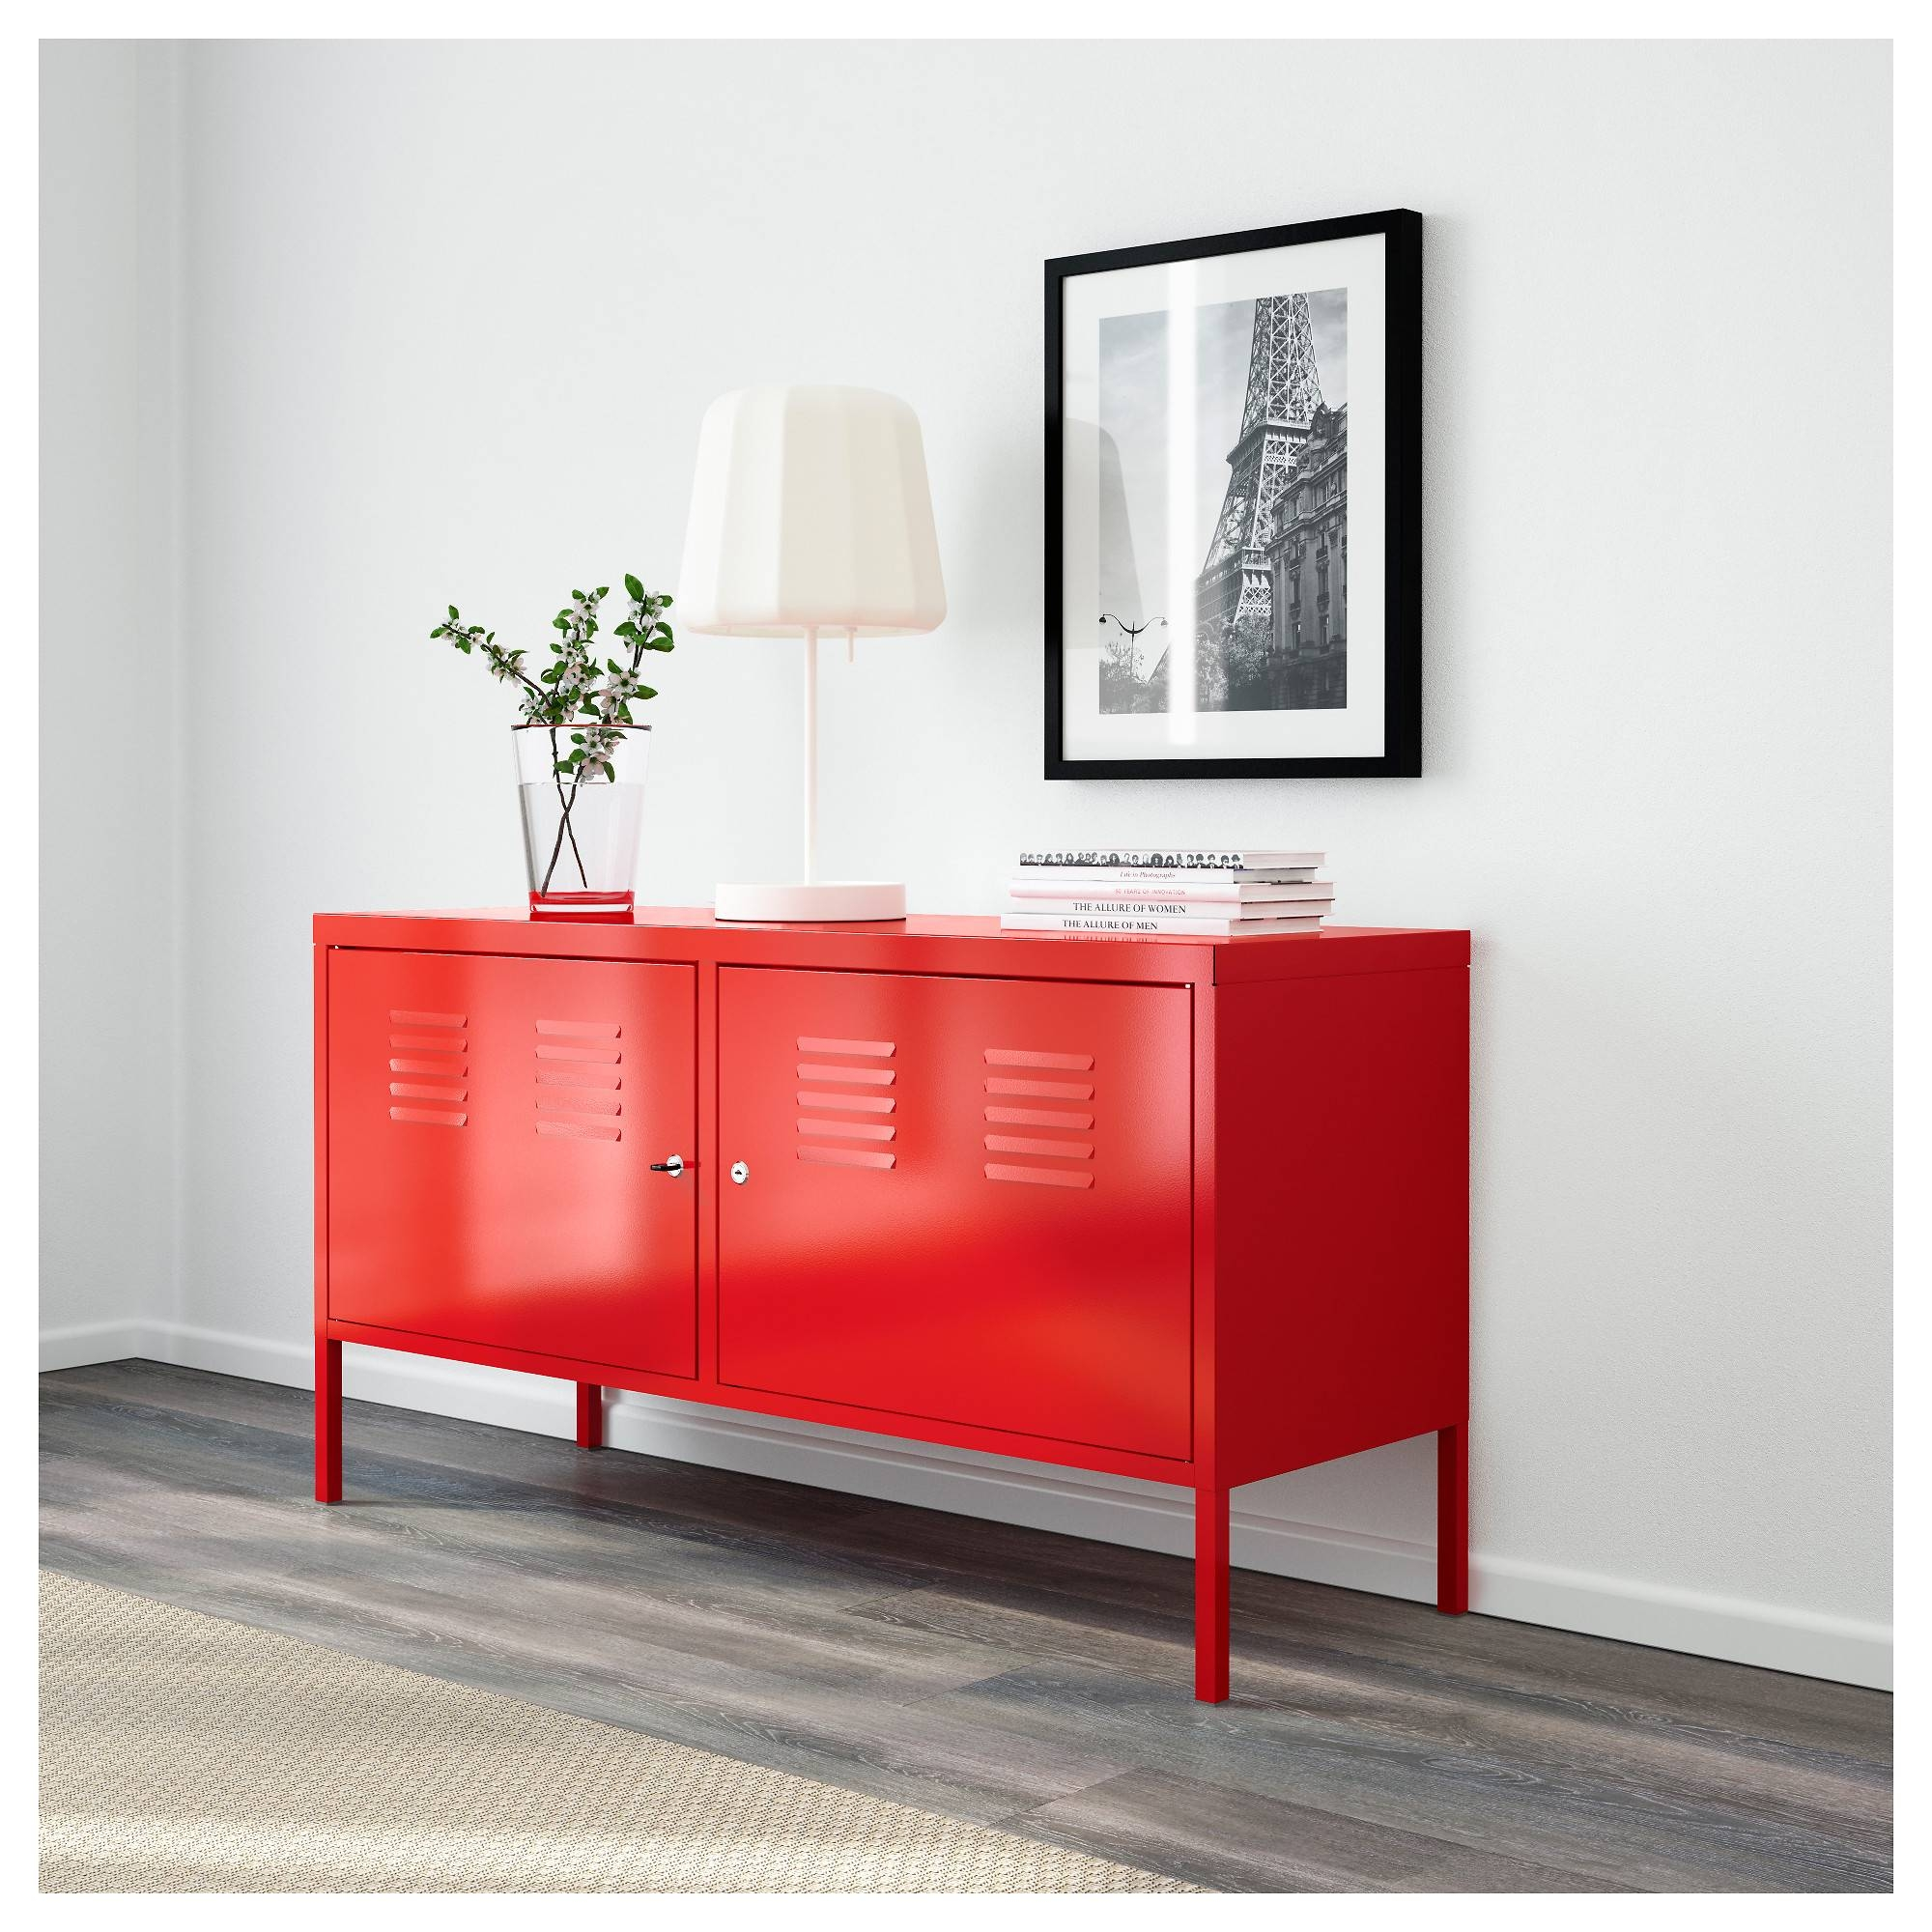 Ikea Ps Cabinet Red 119X63 Cm - Ikea for Ikea Red Sideboards (Image 6 of 15)